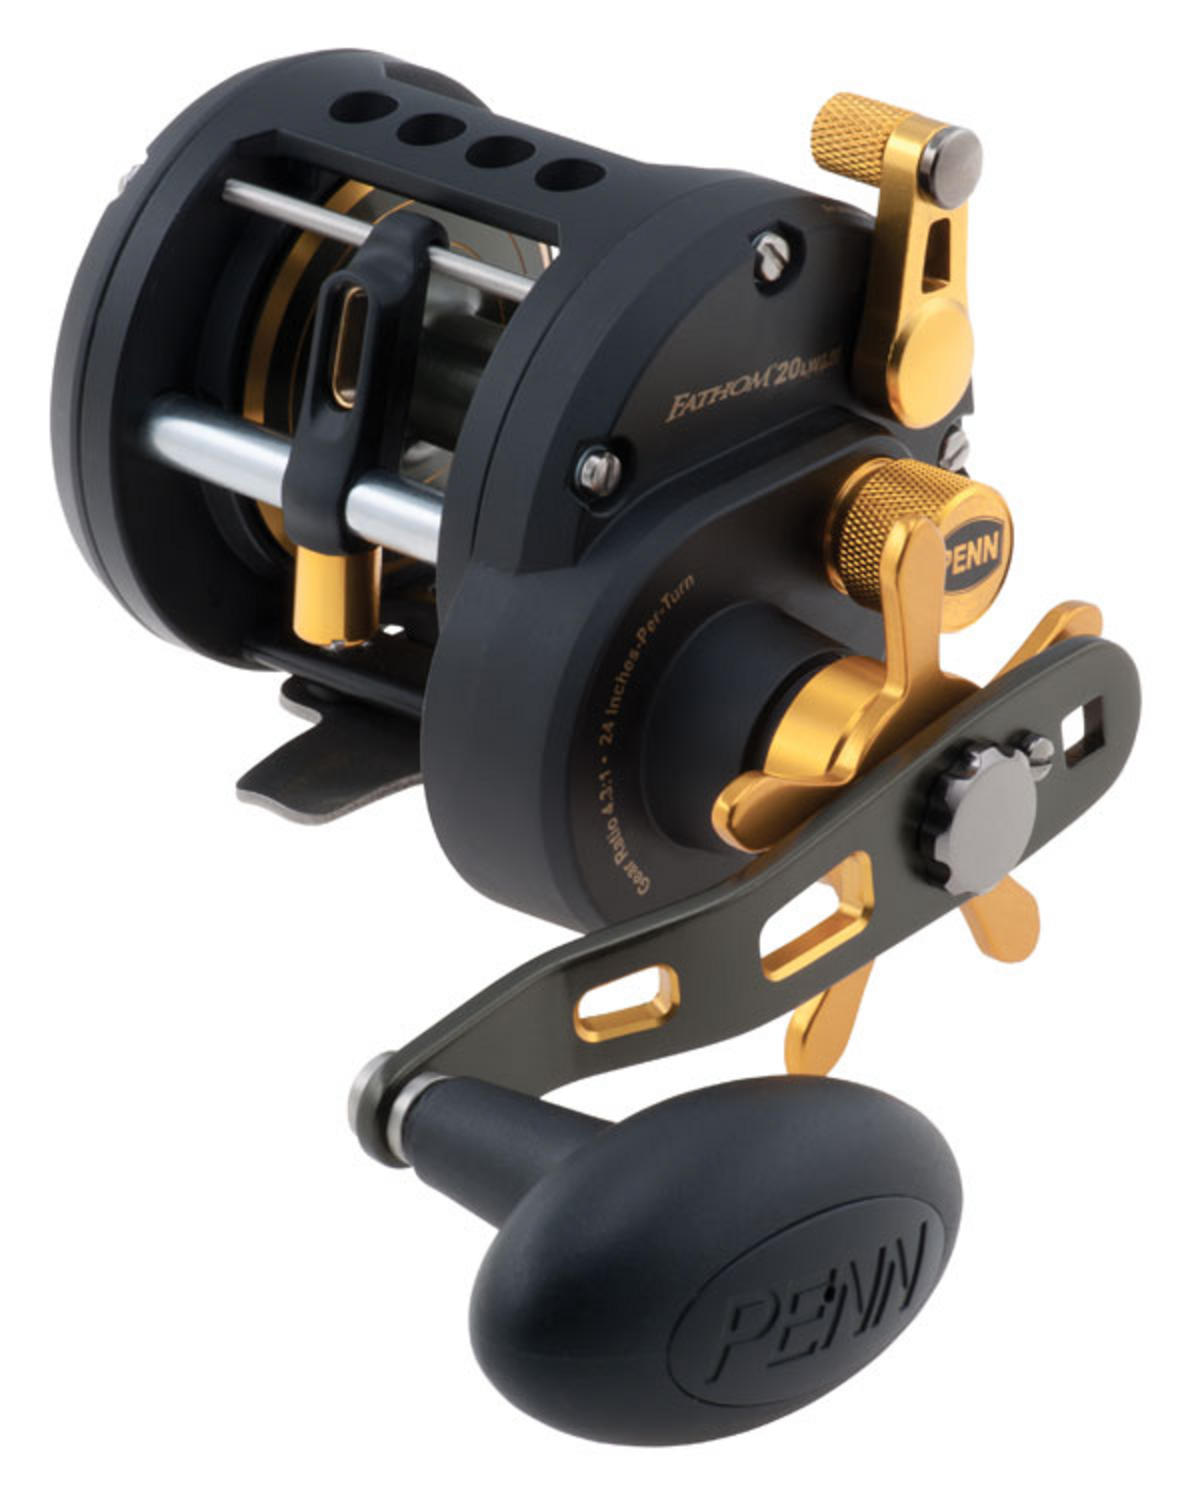 PENN FATHOM 20 LEVEL WIND LEFT HAND MULTIPLIER FISHING REEL FTH20LWLH 1259867